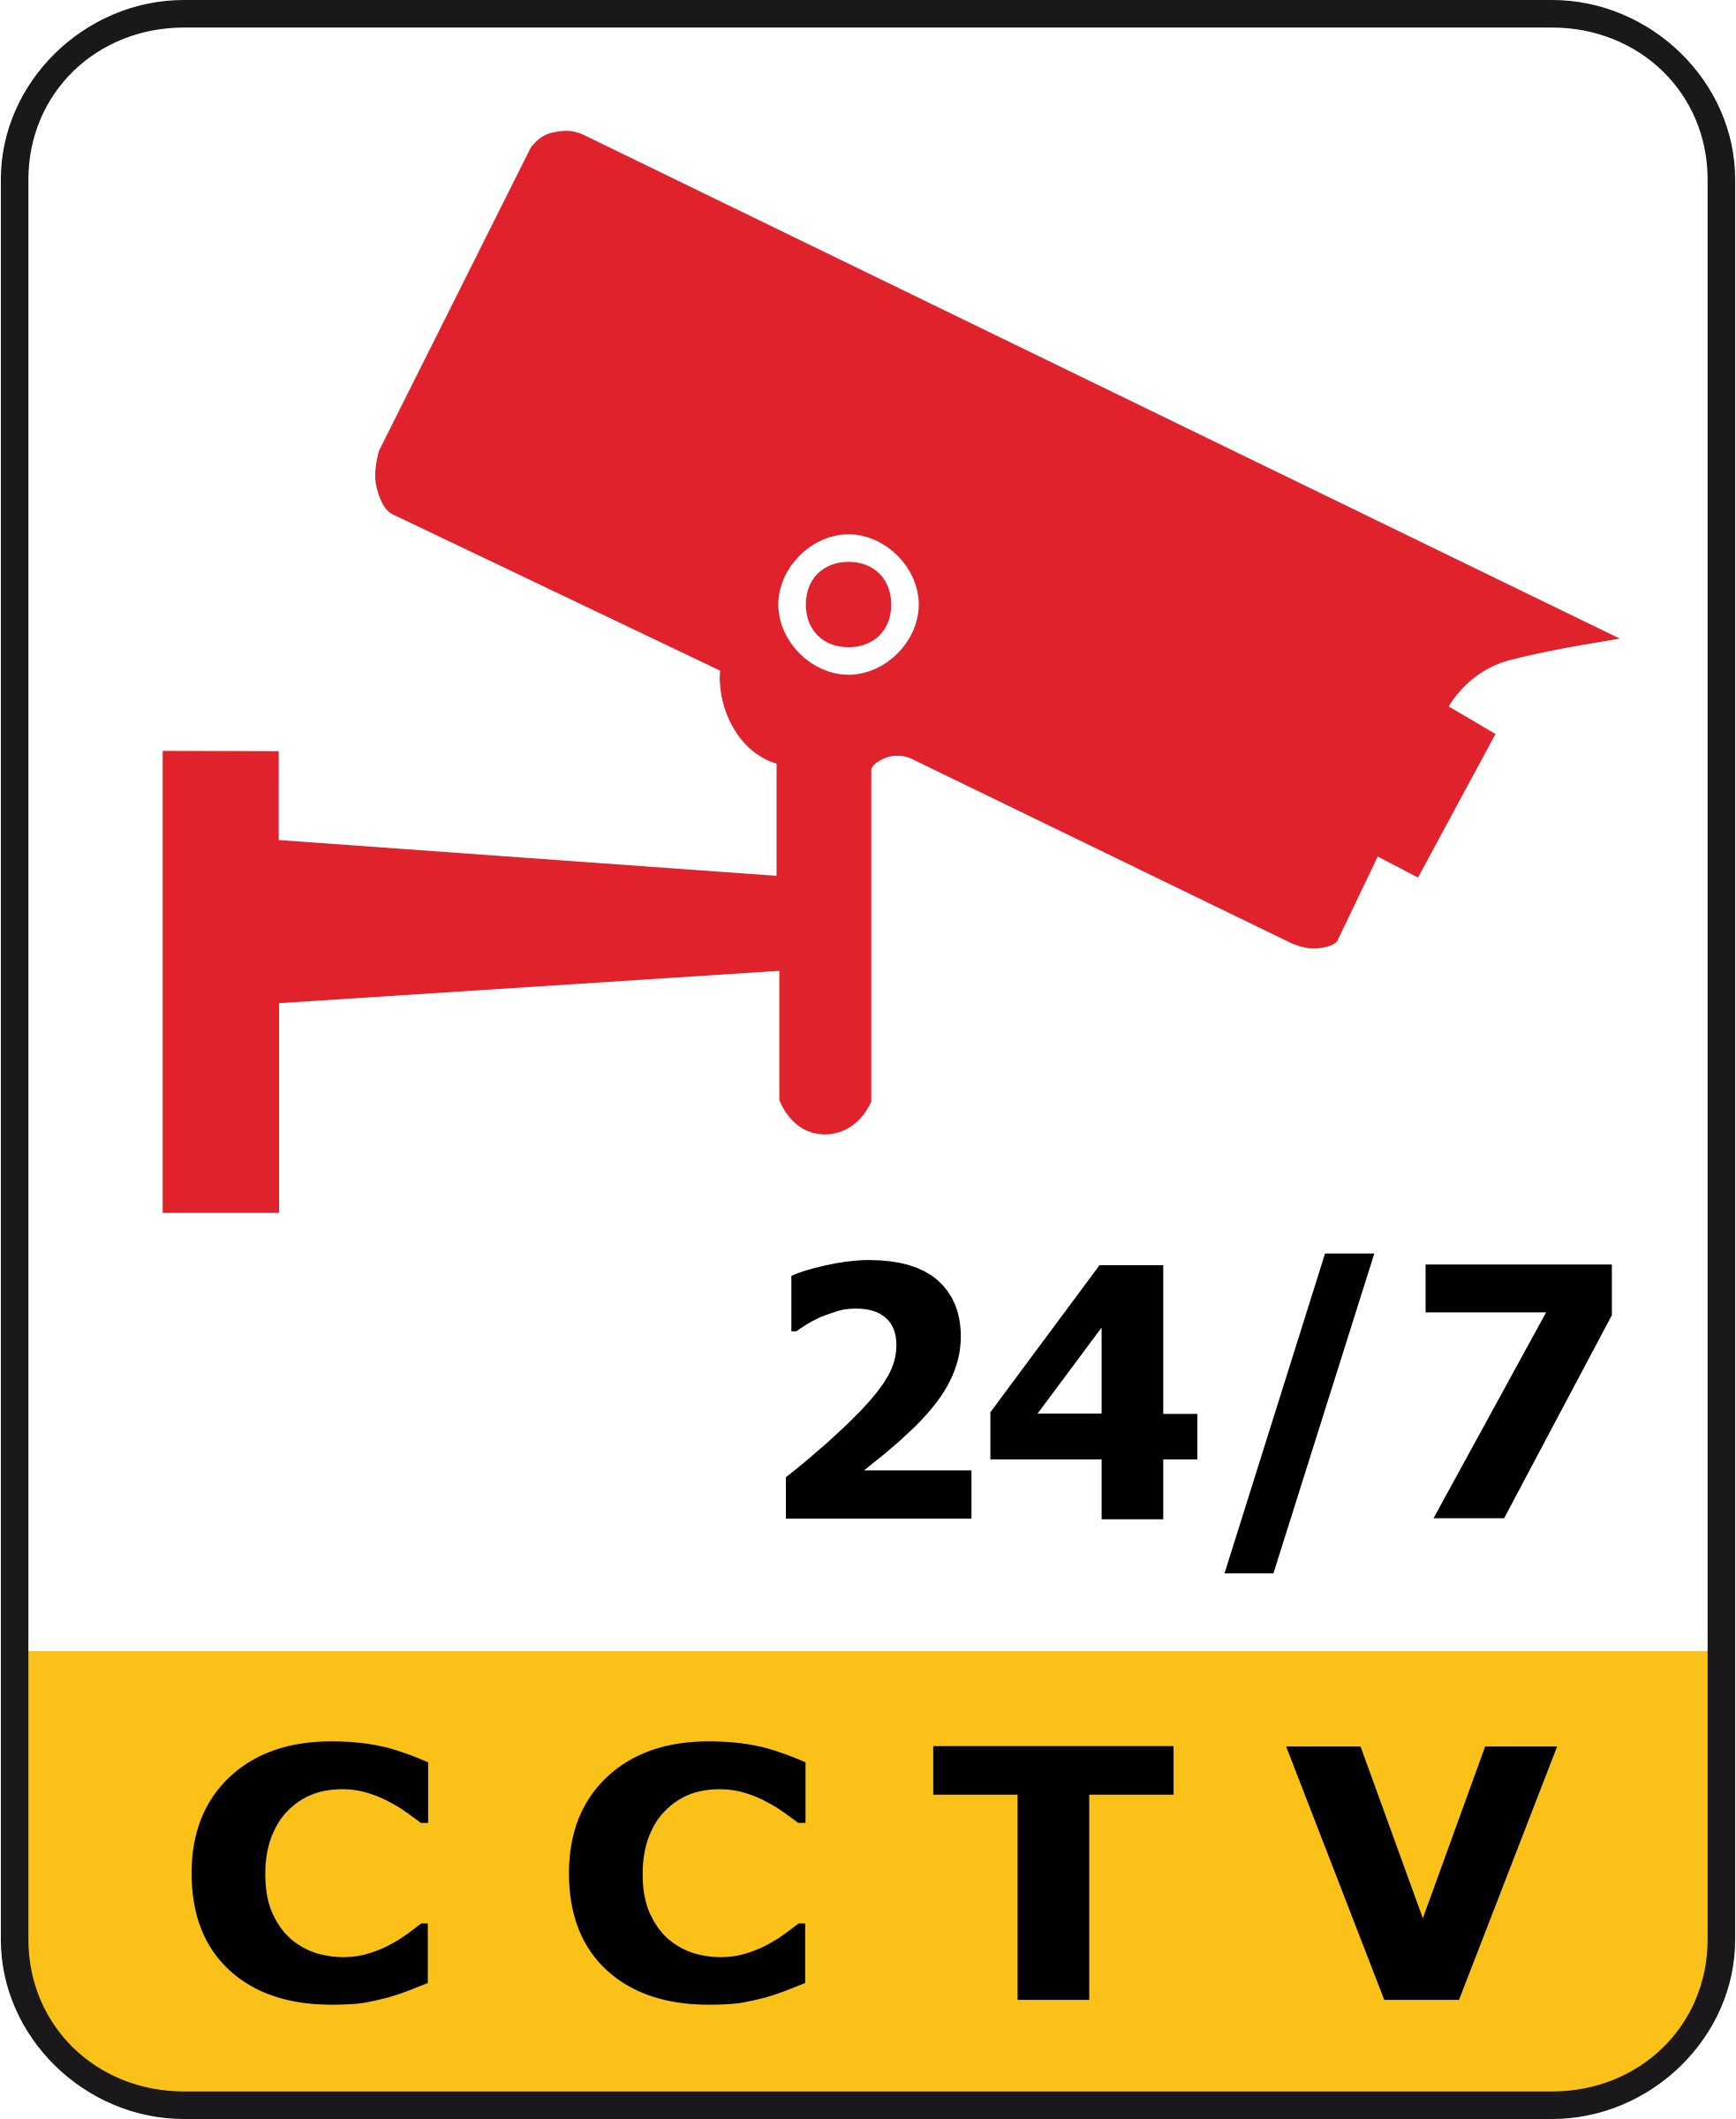 CCTV 24/7 Camera Surveillance by HuongDesign